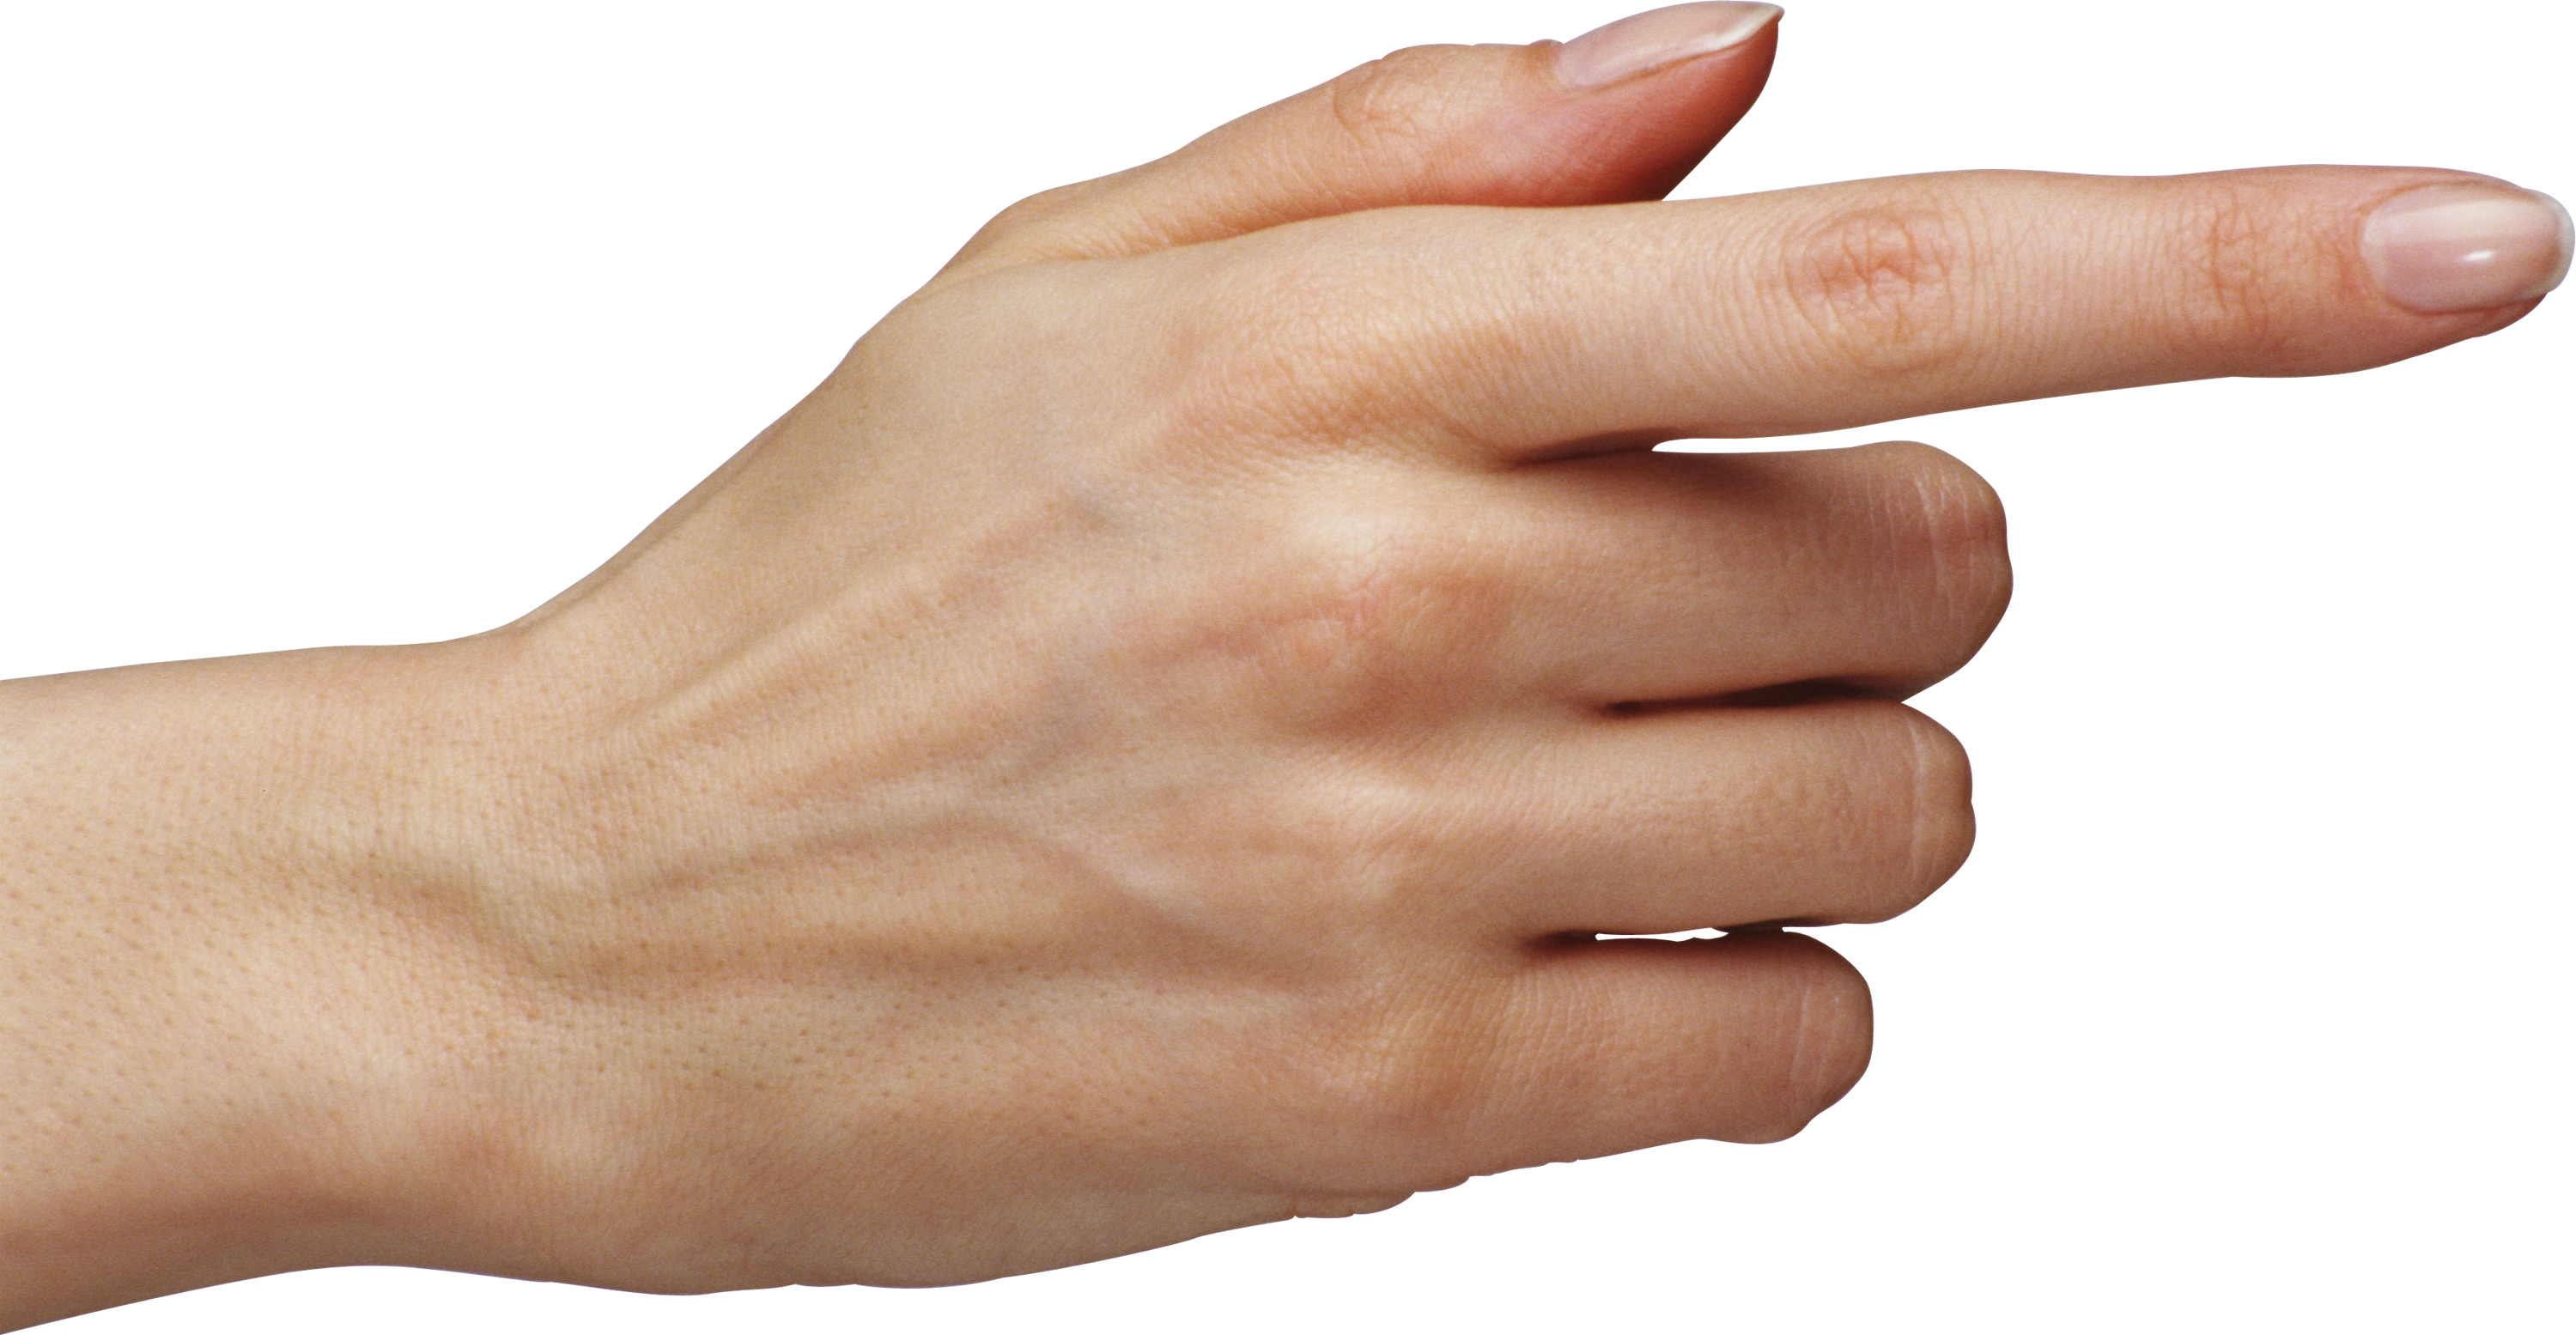 One finger image purepng. Hand png clipart download